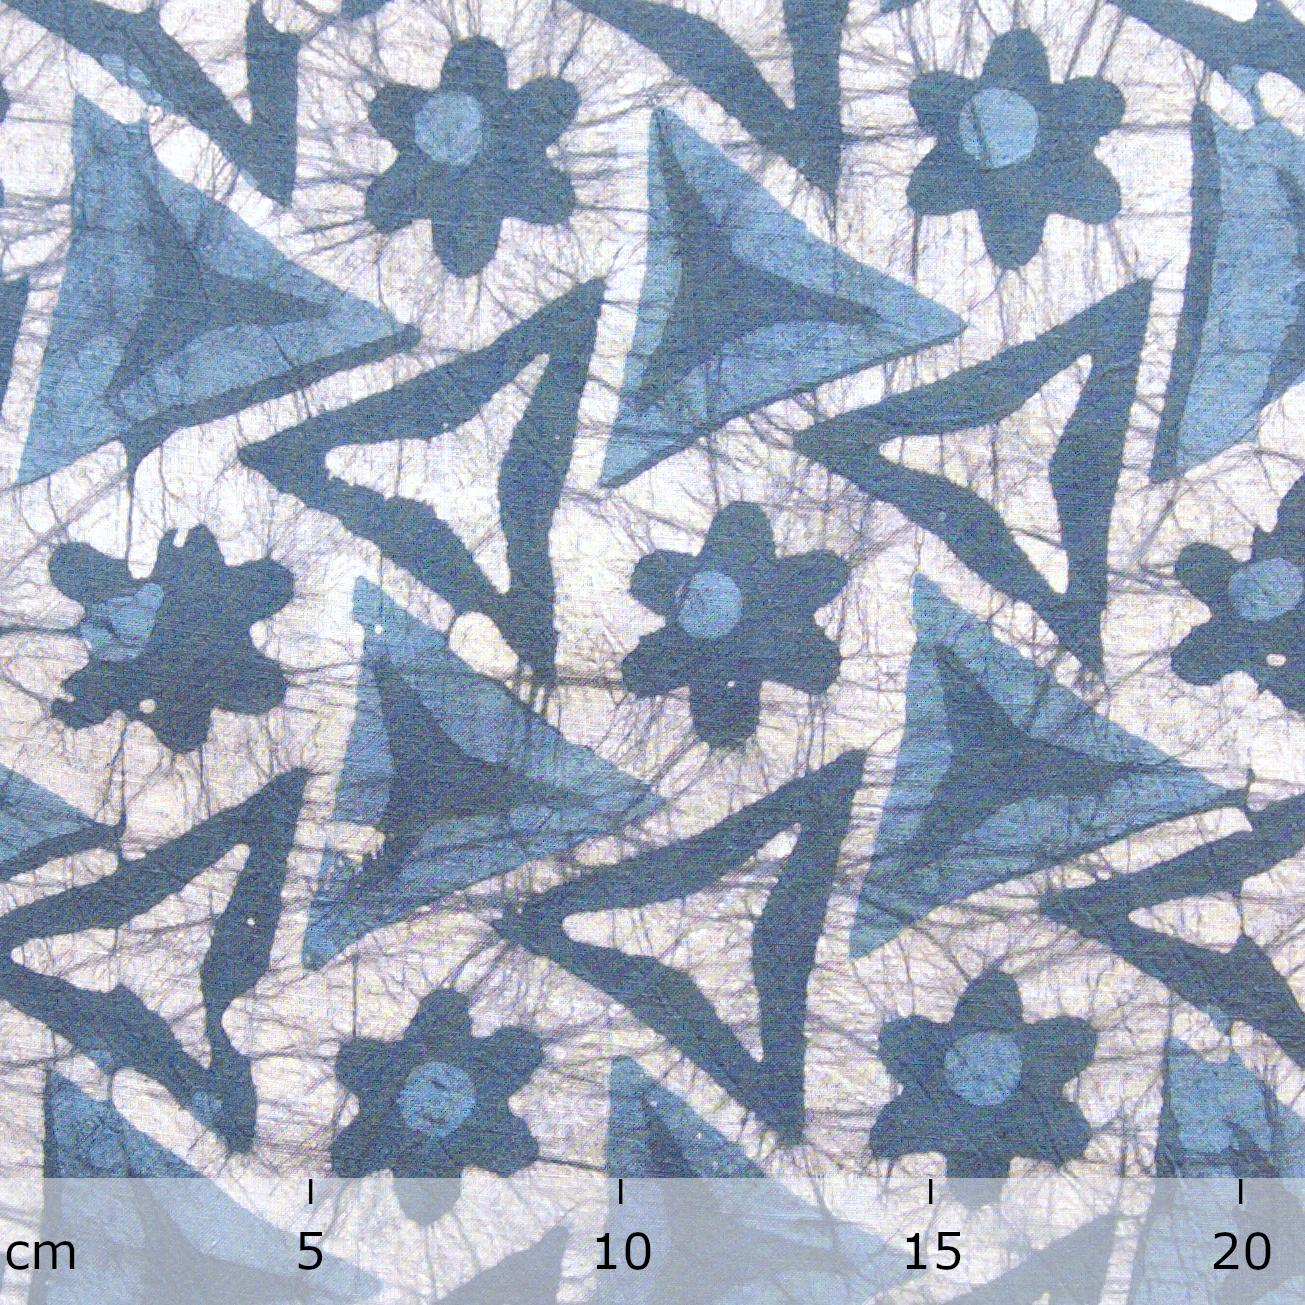 4 - SHA22 - 100% Block-Printed Batik Cotton Fabric From India - Tri Blade Motif - Ruler - Live